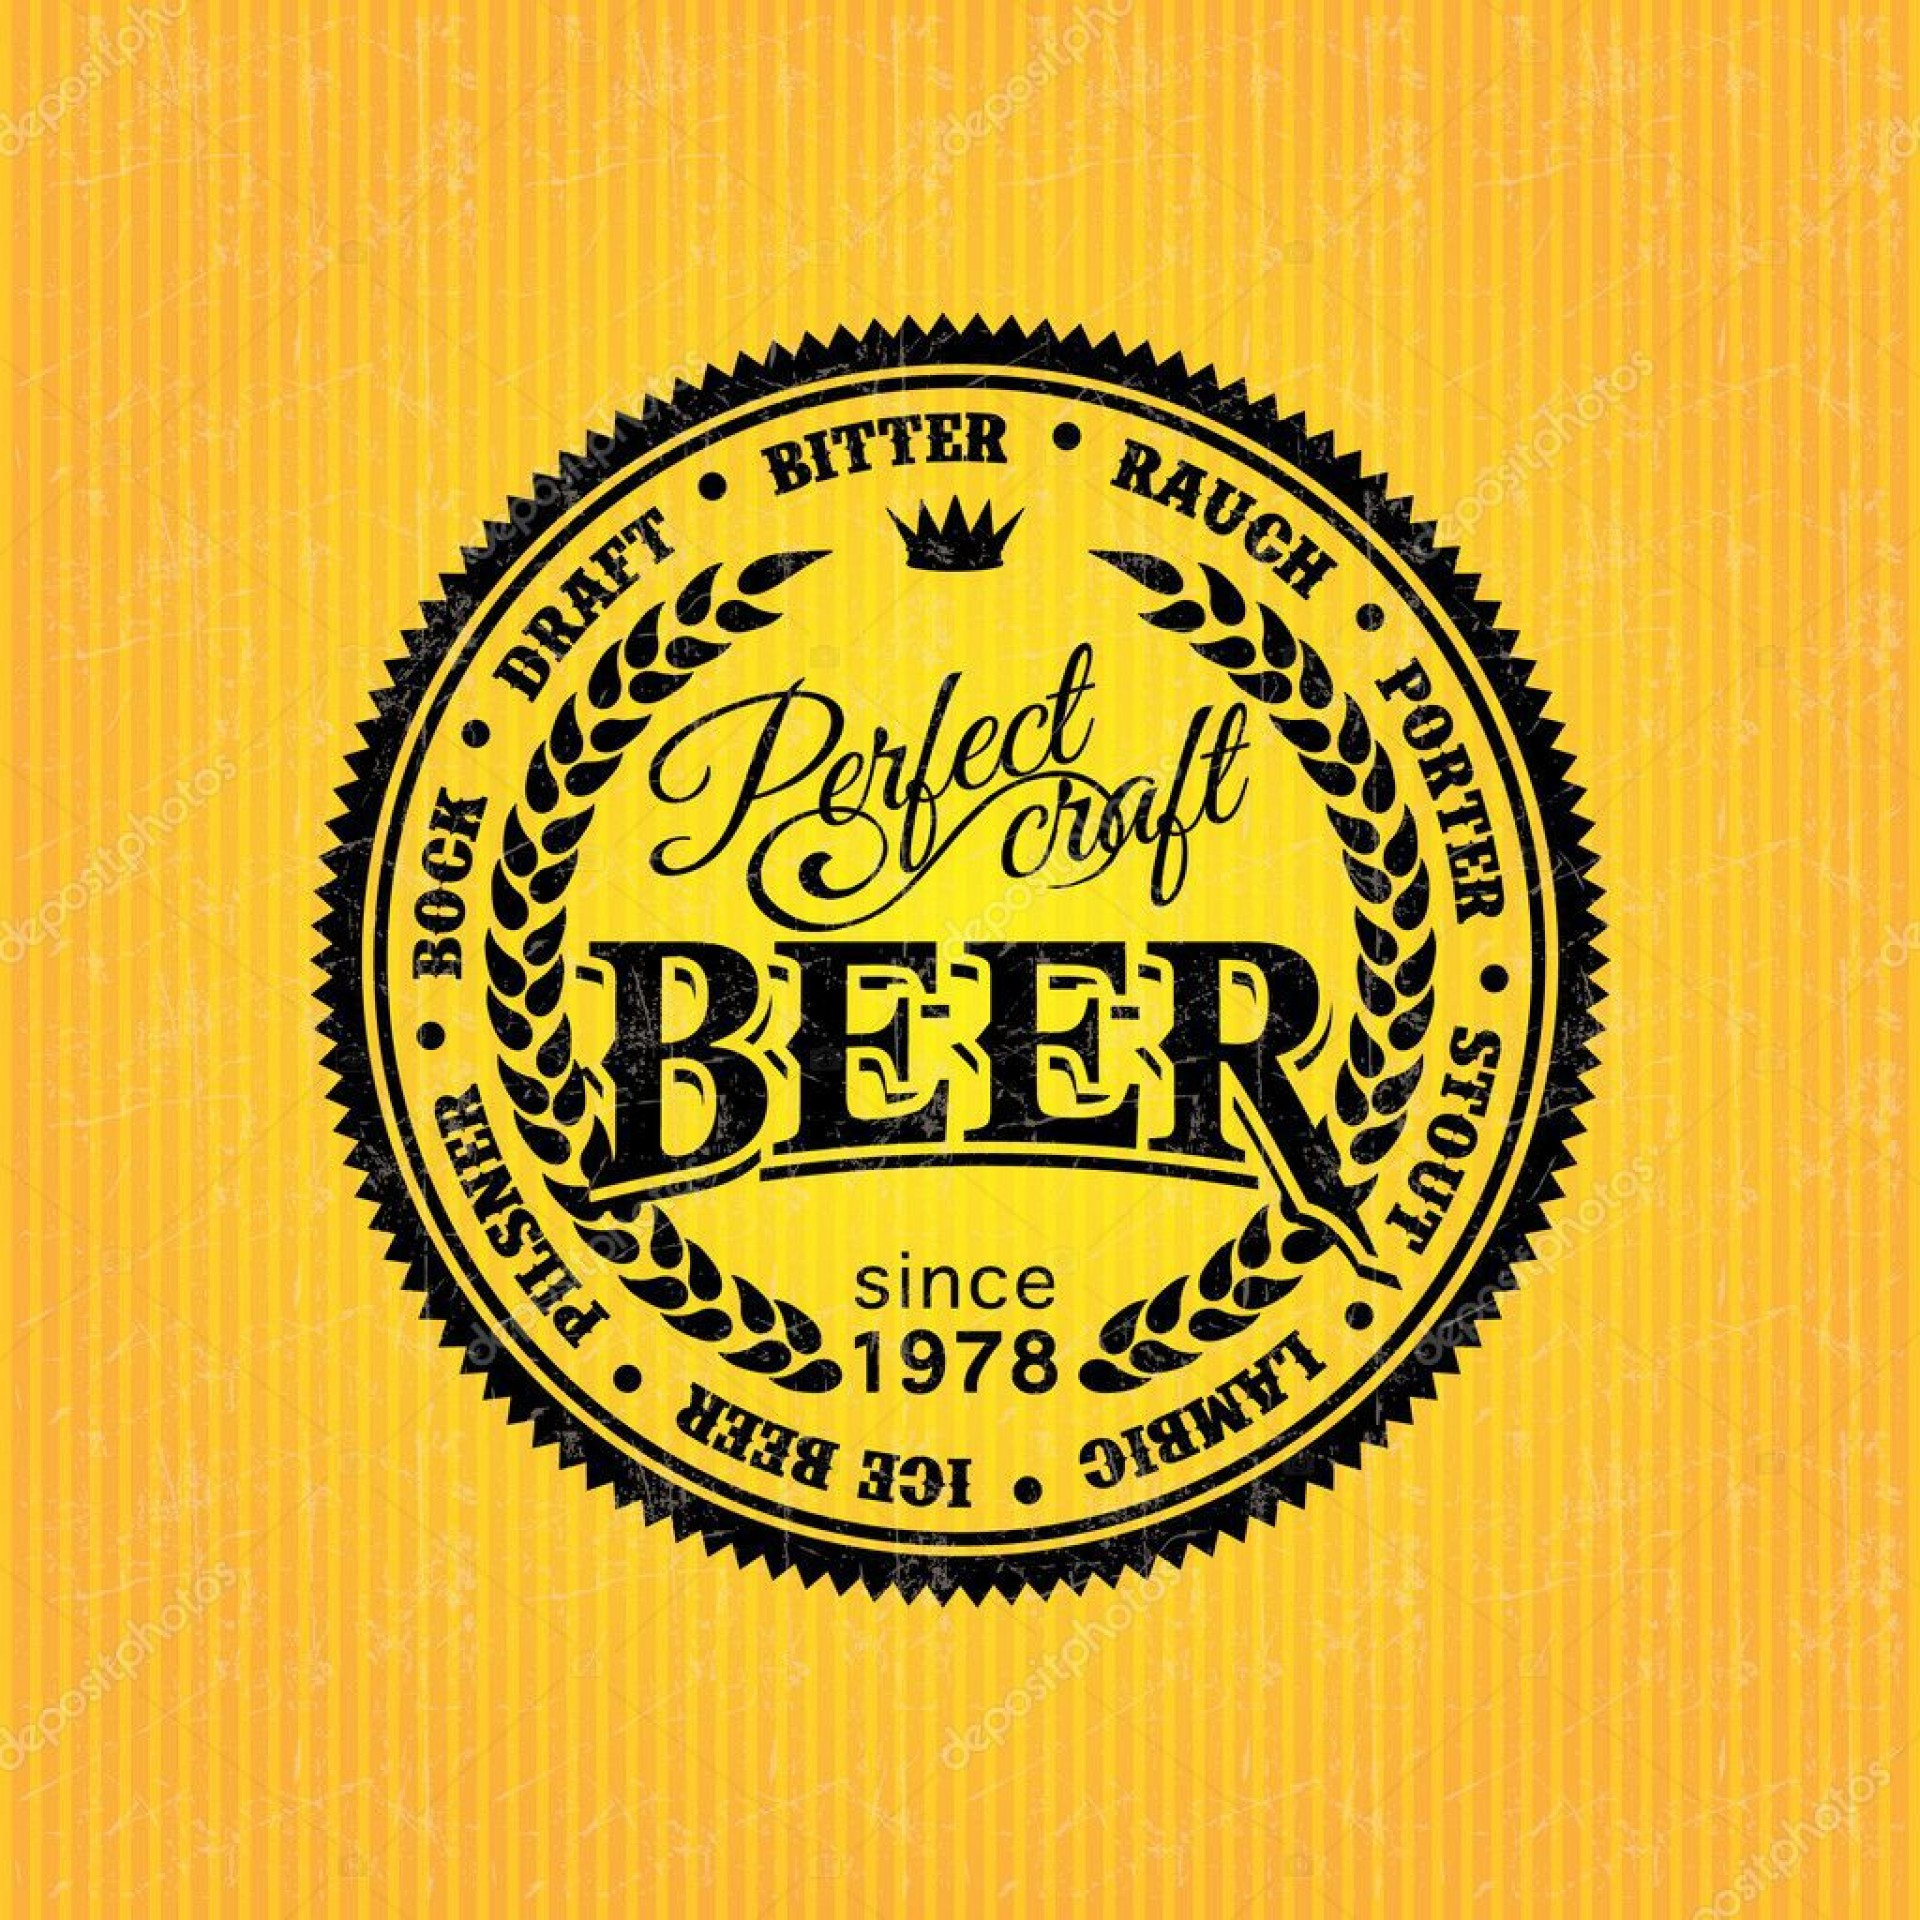 006 Dreaded Beer Label Design Template Image  Free1920